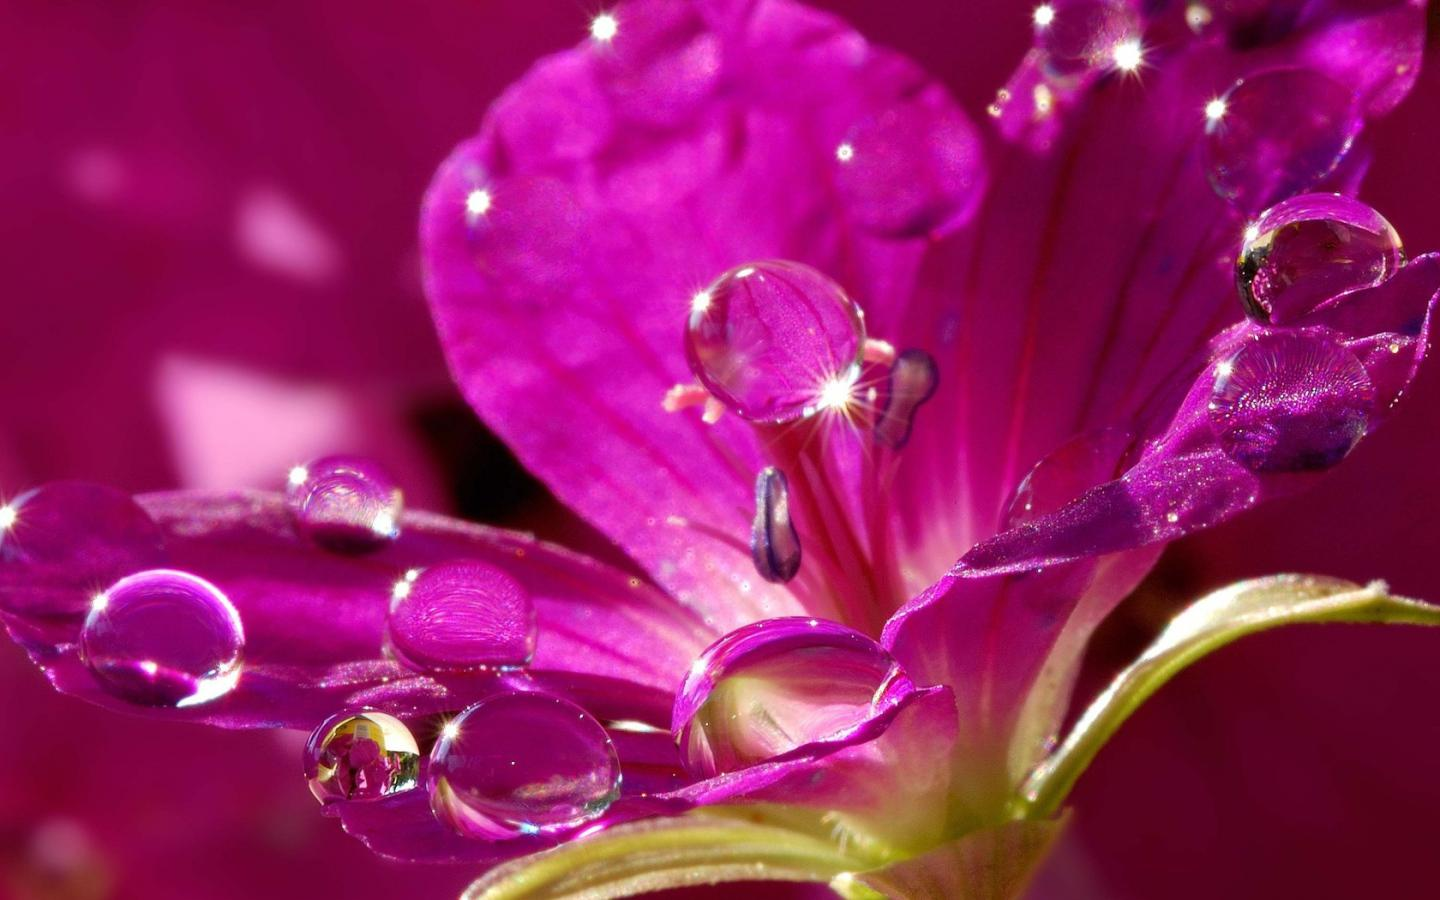 Water drops on a pink flower HQ Wallpaper